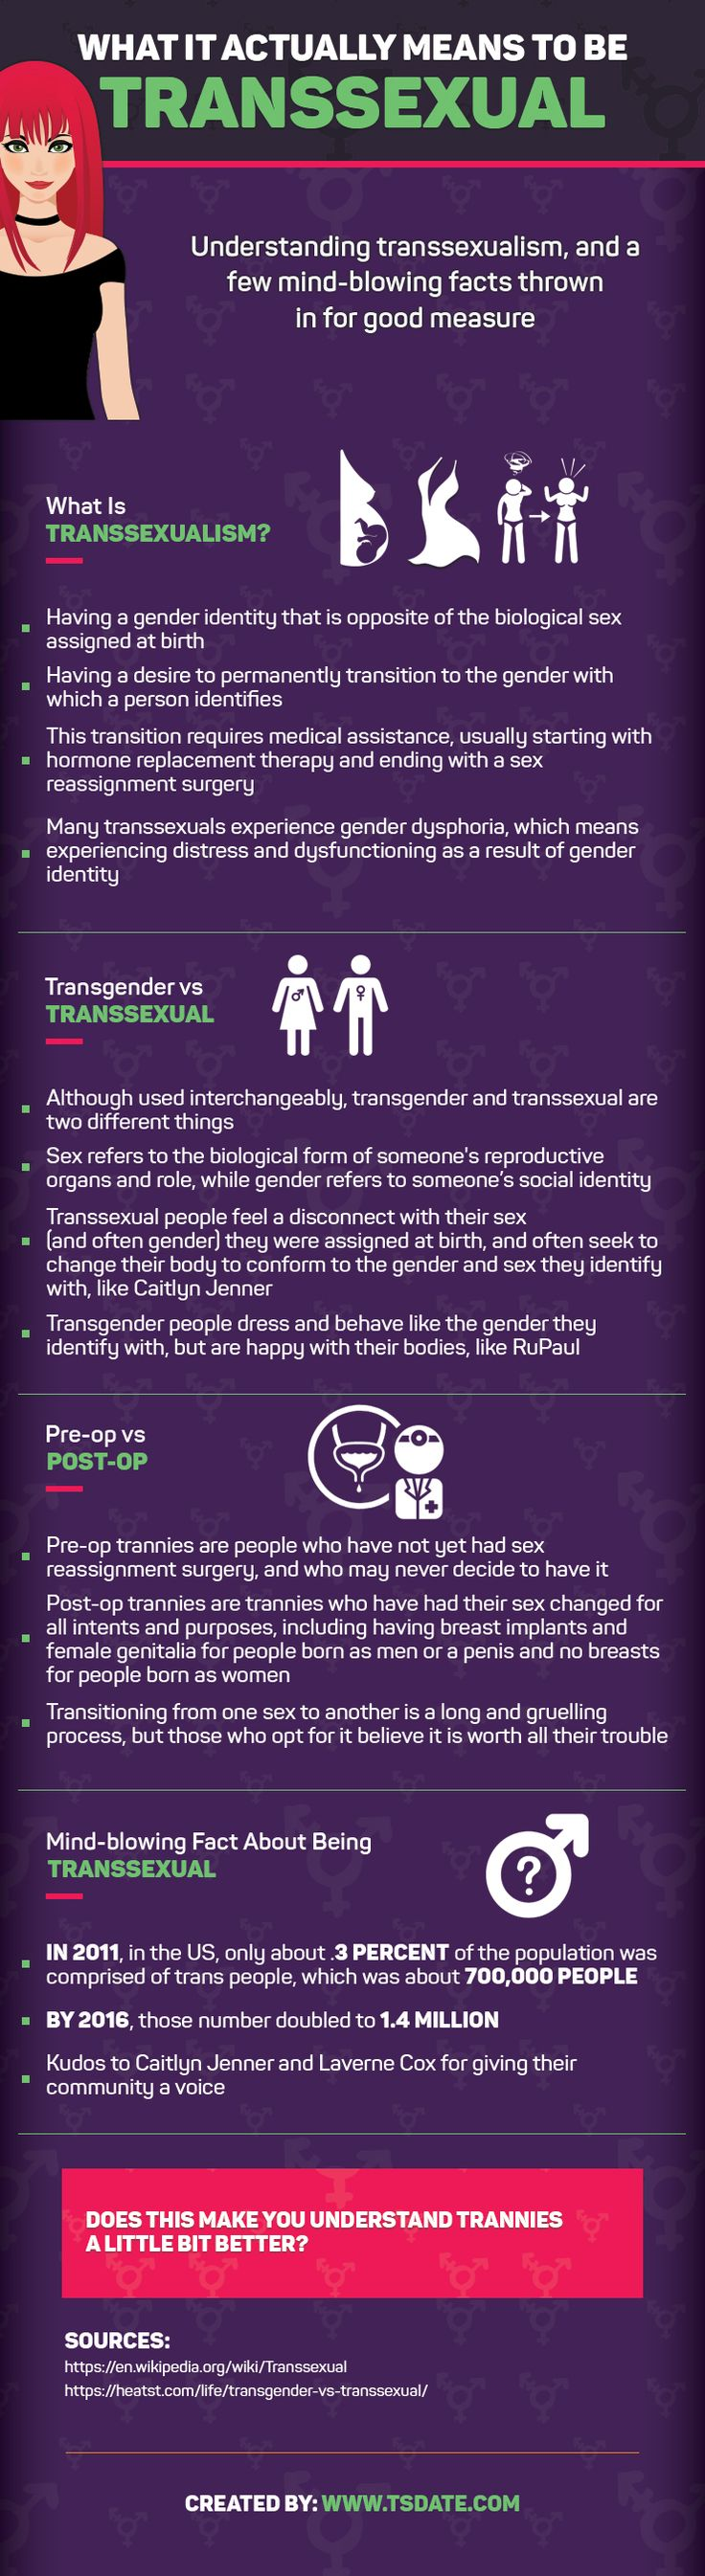 Before you dive into transsexual dating, you need to learn what it means to be transsexuals in the first place.